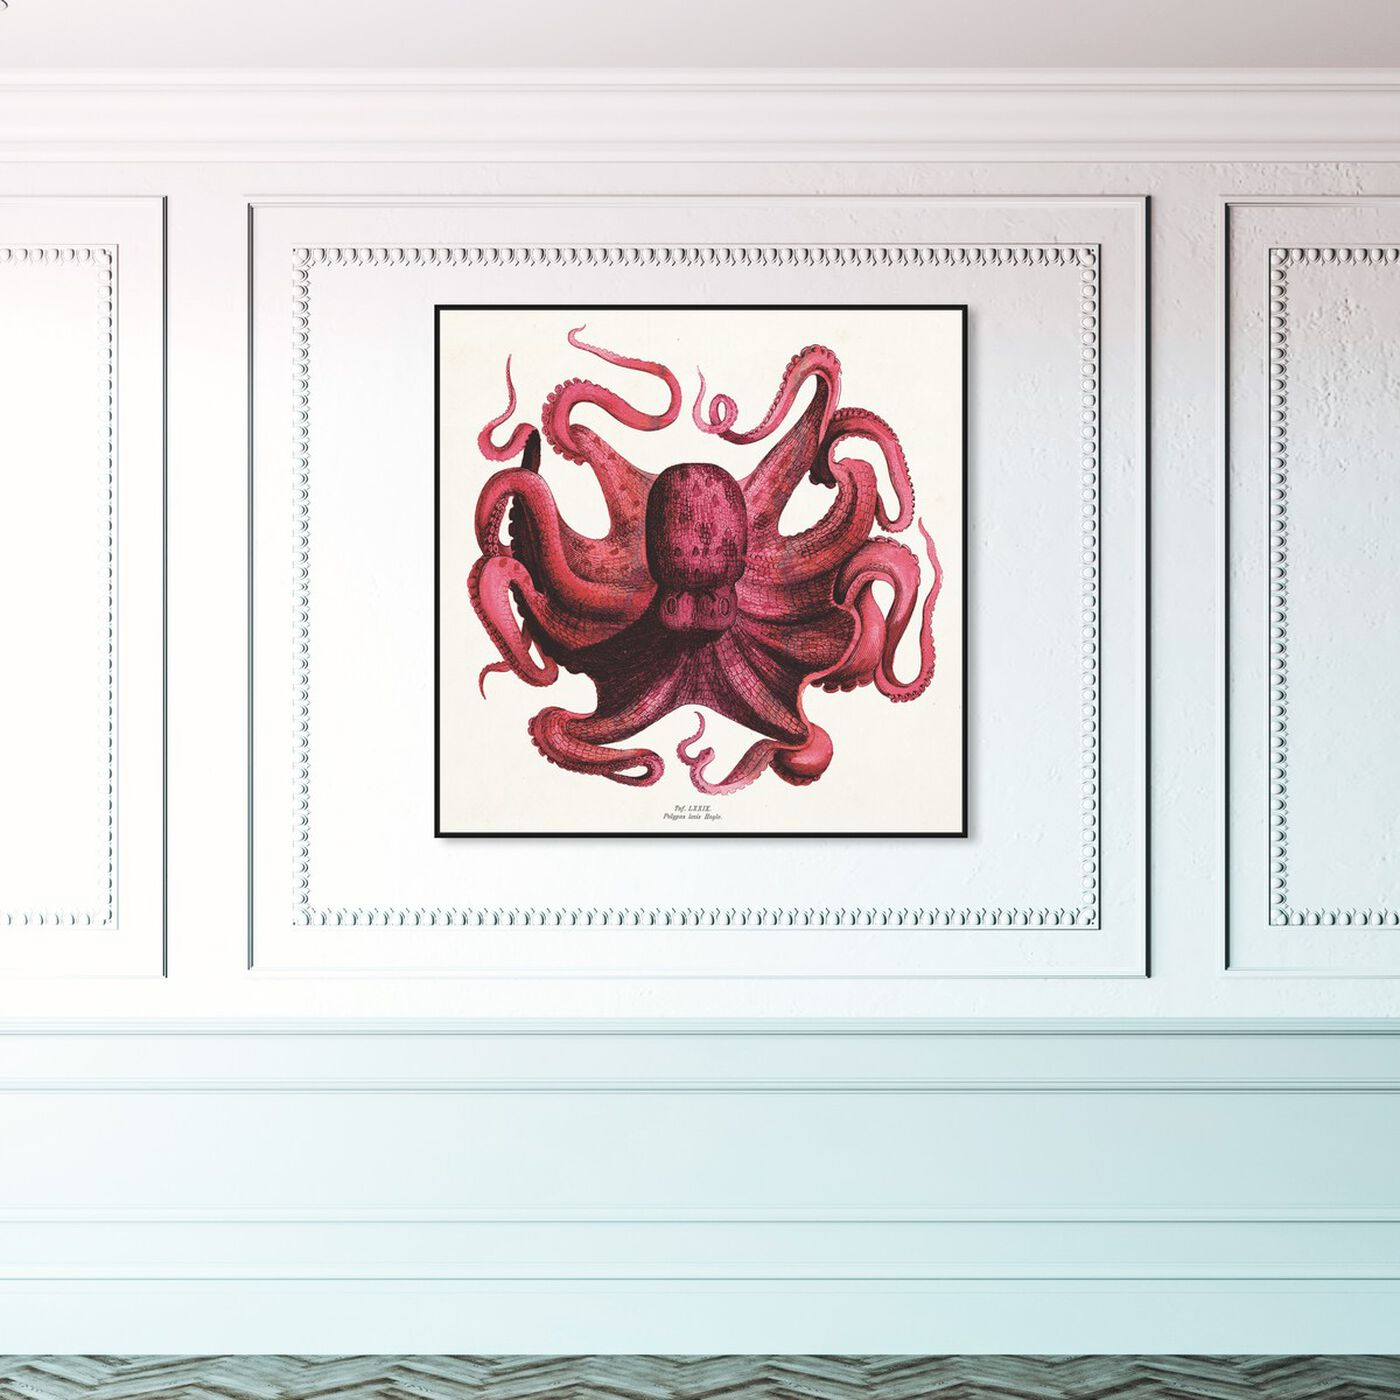 Hanging view of Polpo Rosso featuring animals and sea animals art.